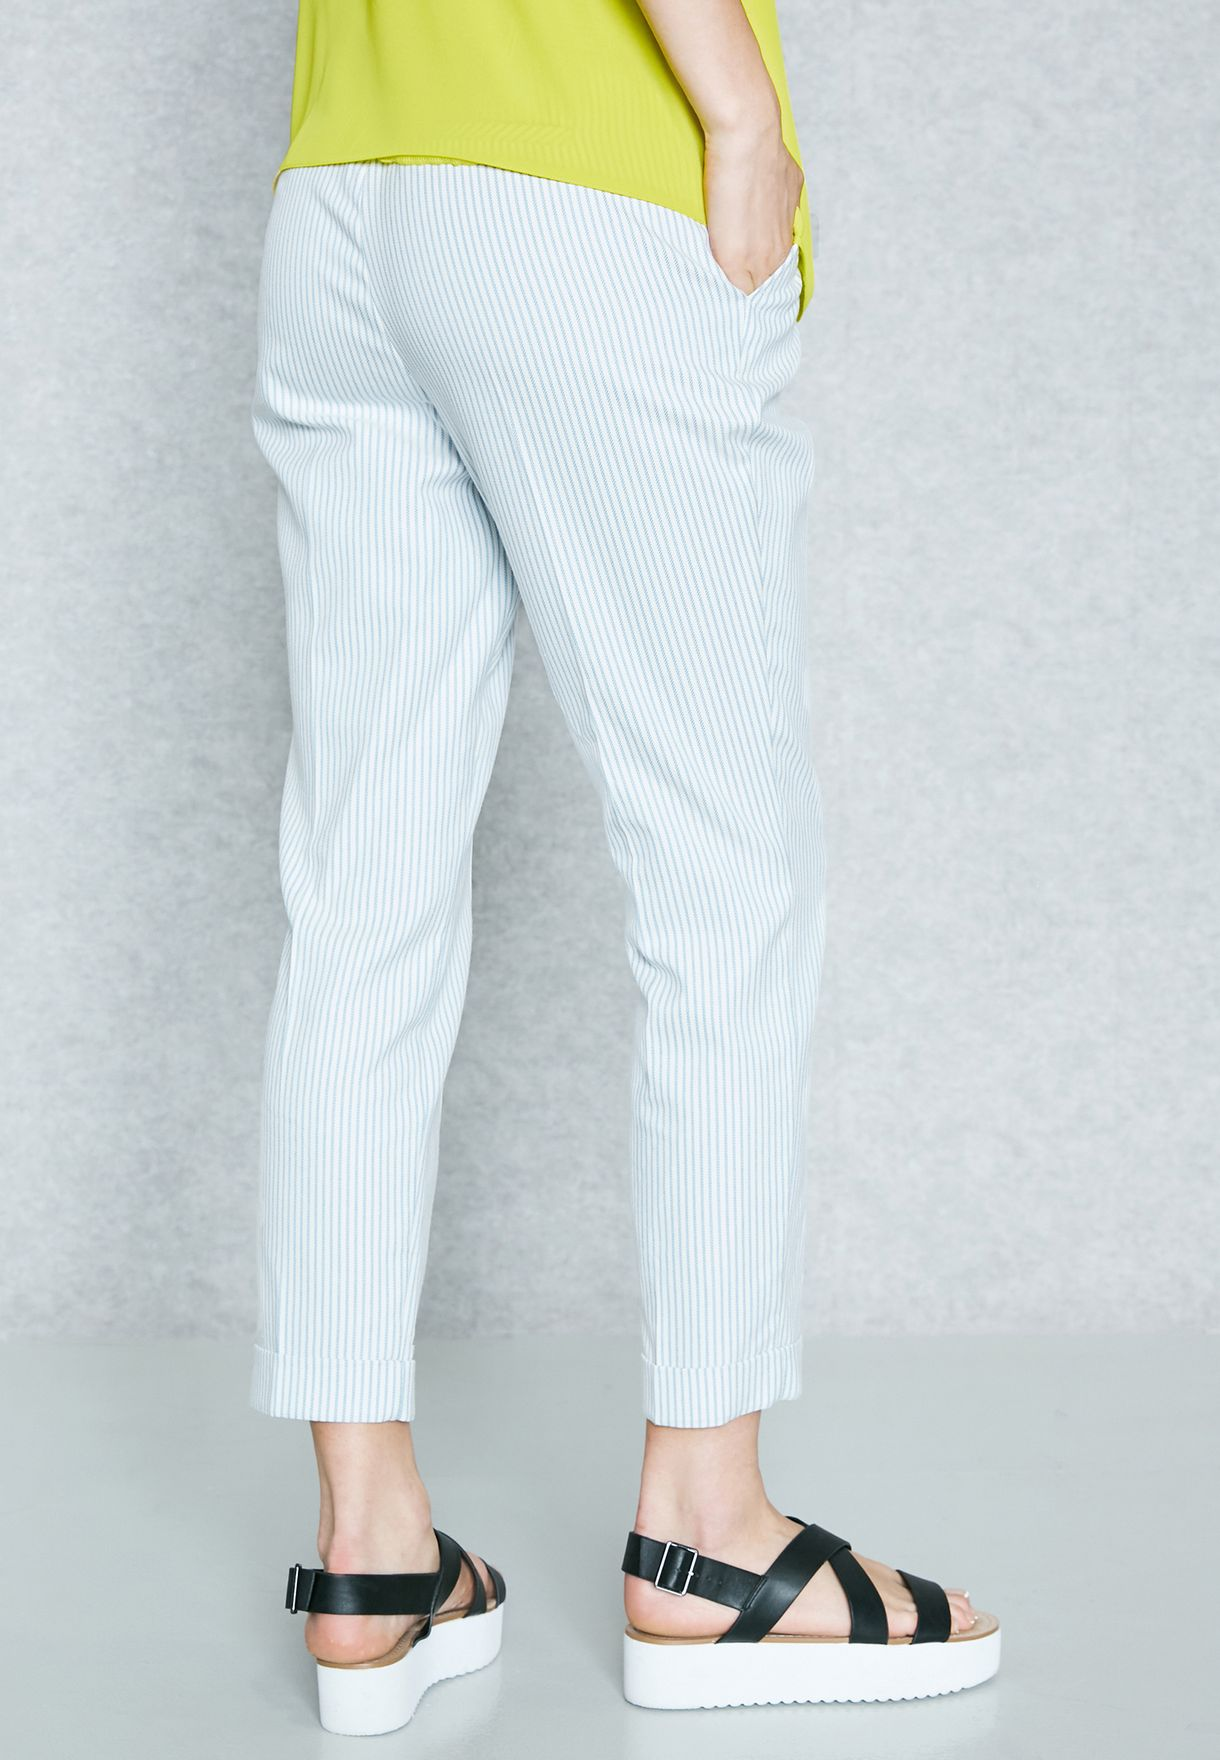 Striped Ankle Grazer Pants